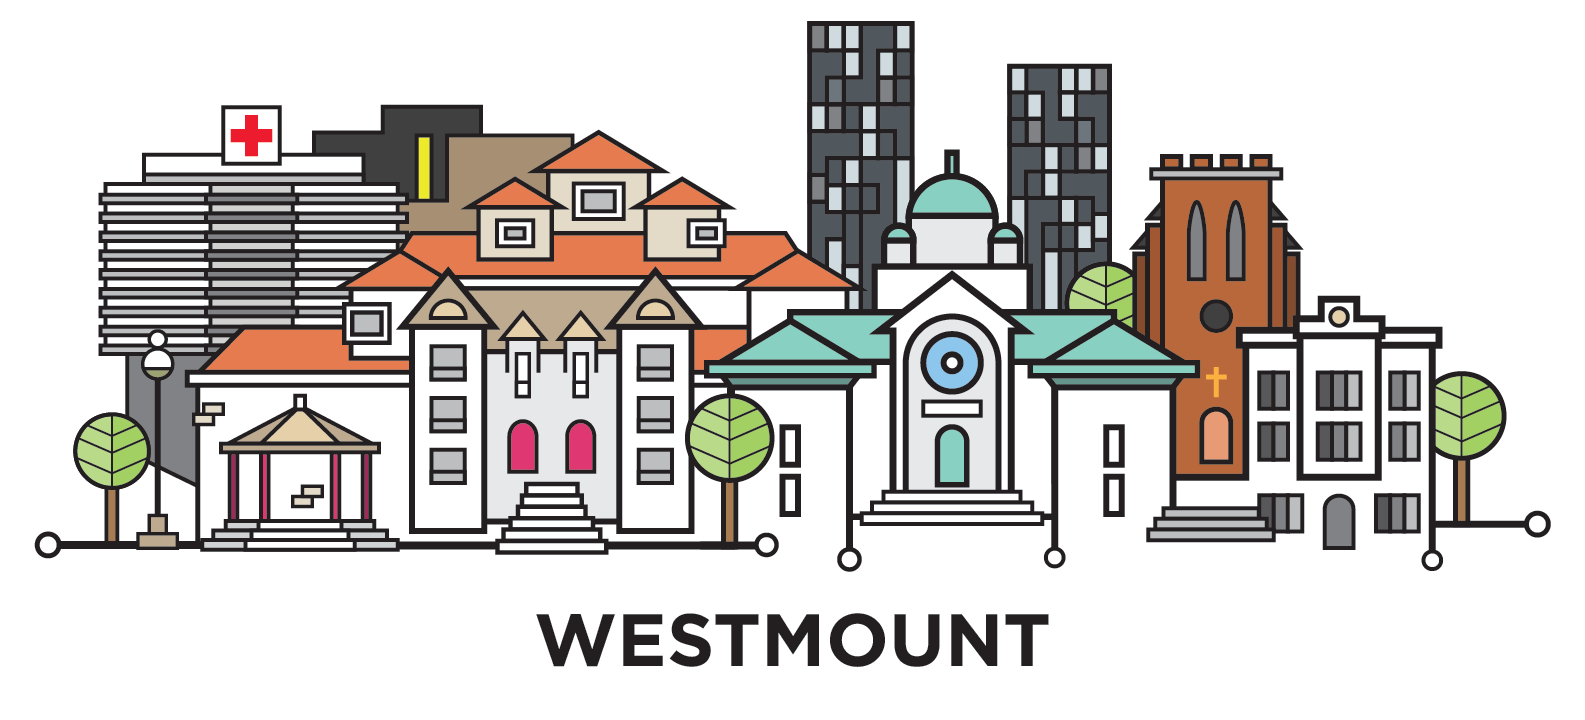 mtl-westmount-cityline-illustration-by-loogart